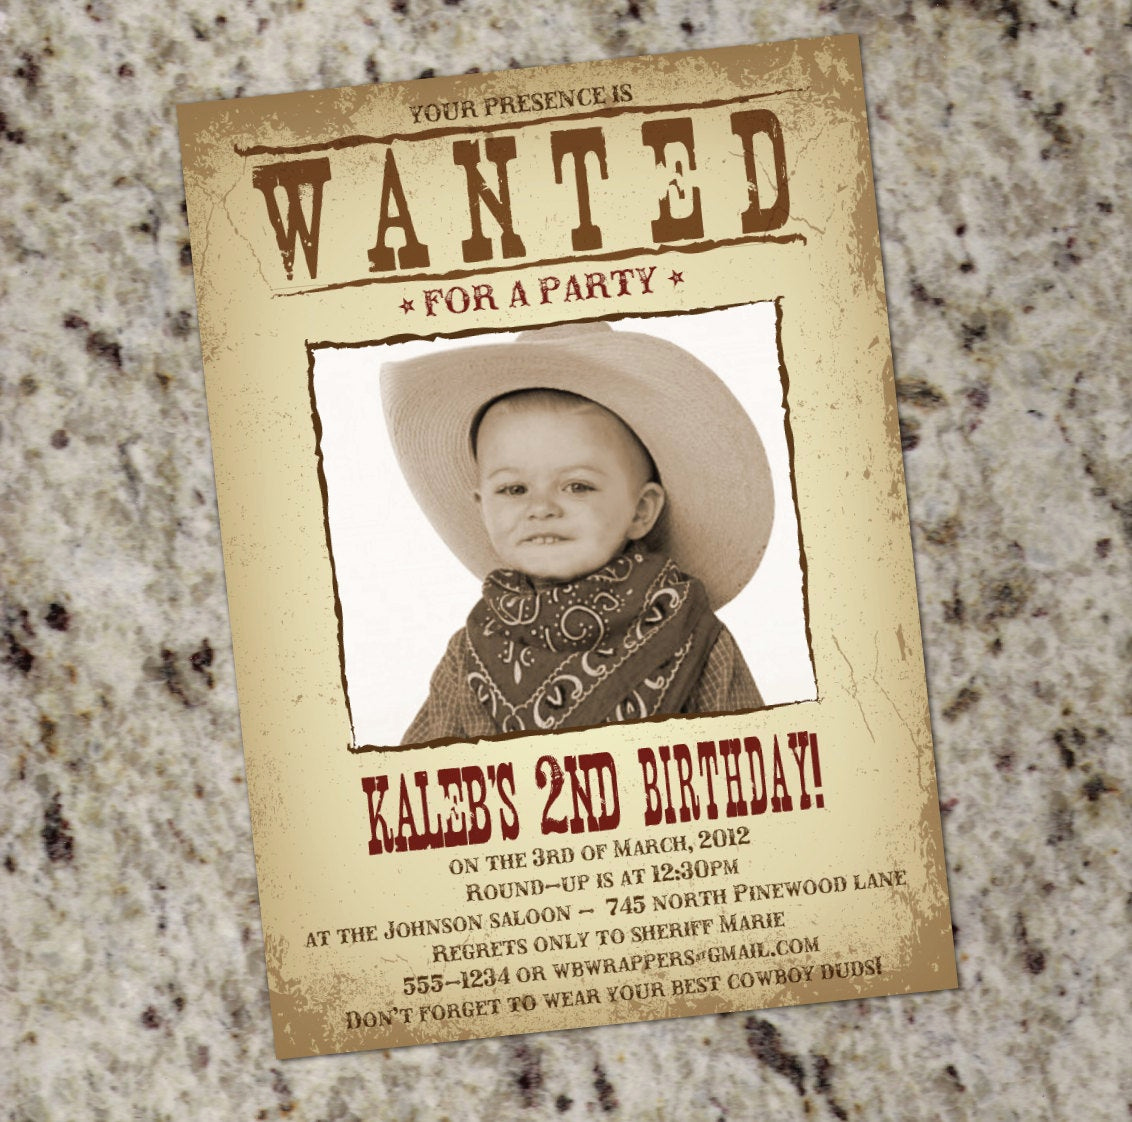 Western theme Party Invitation Template Unique Wanted Poster Western themed Party Invitation Printable